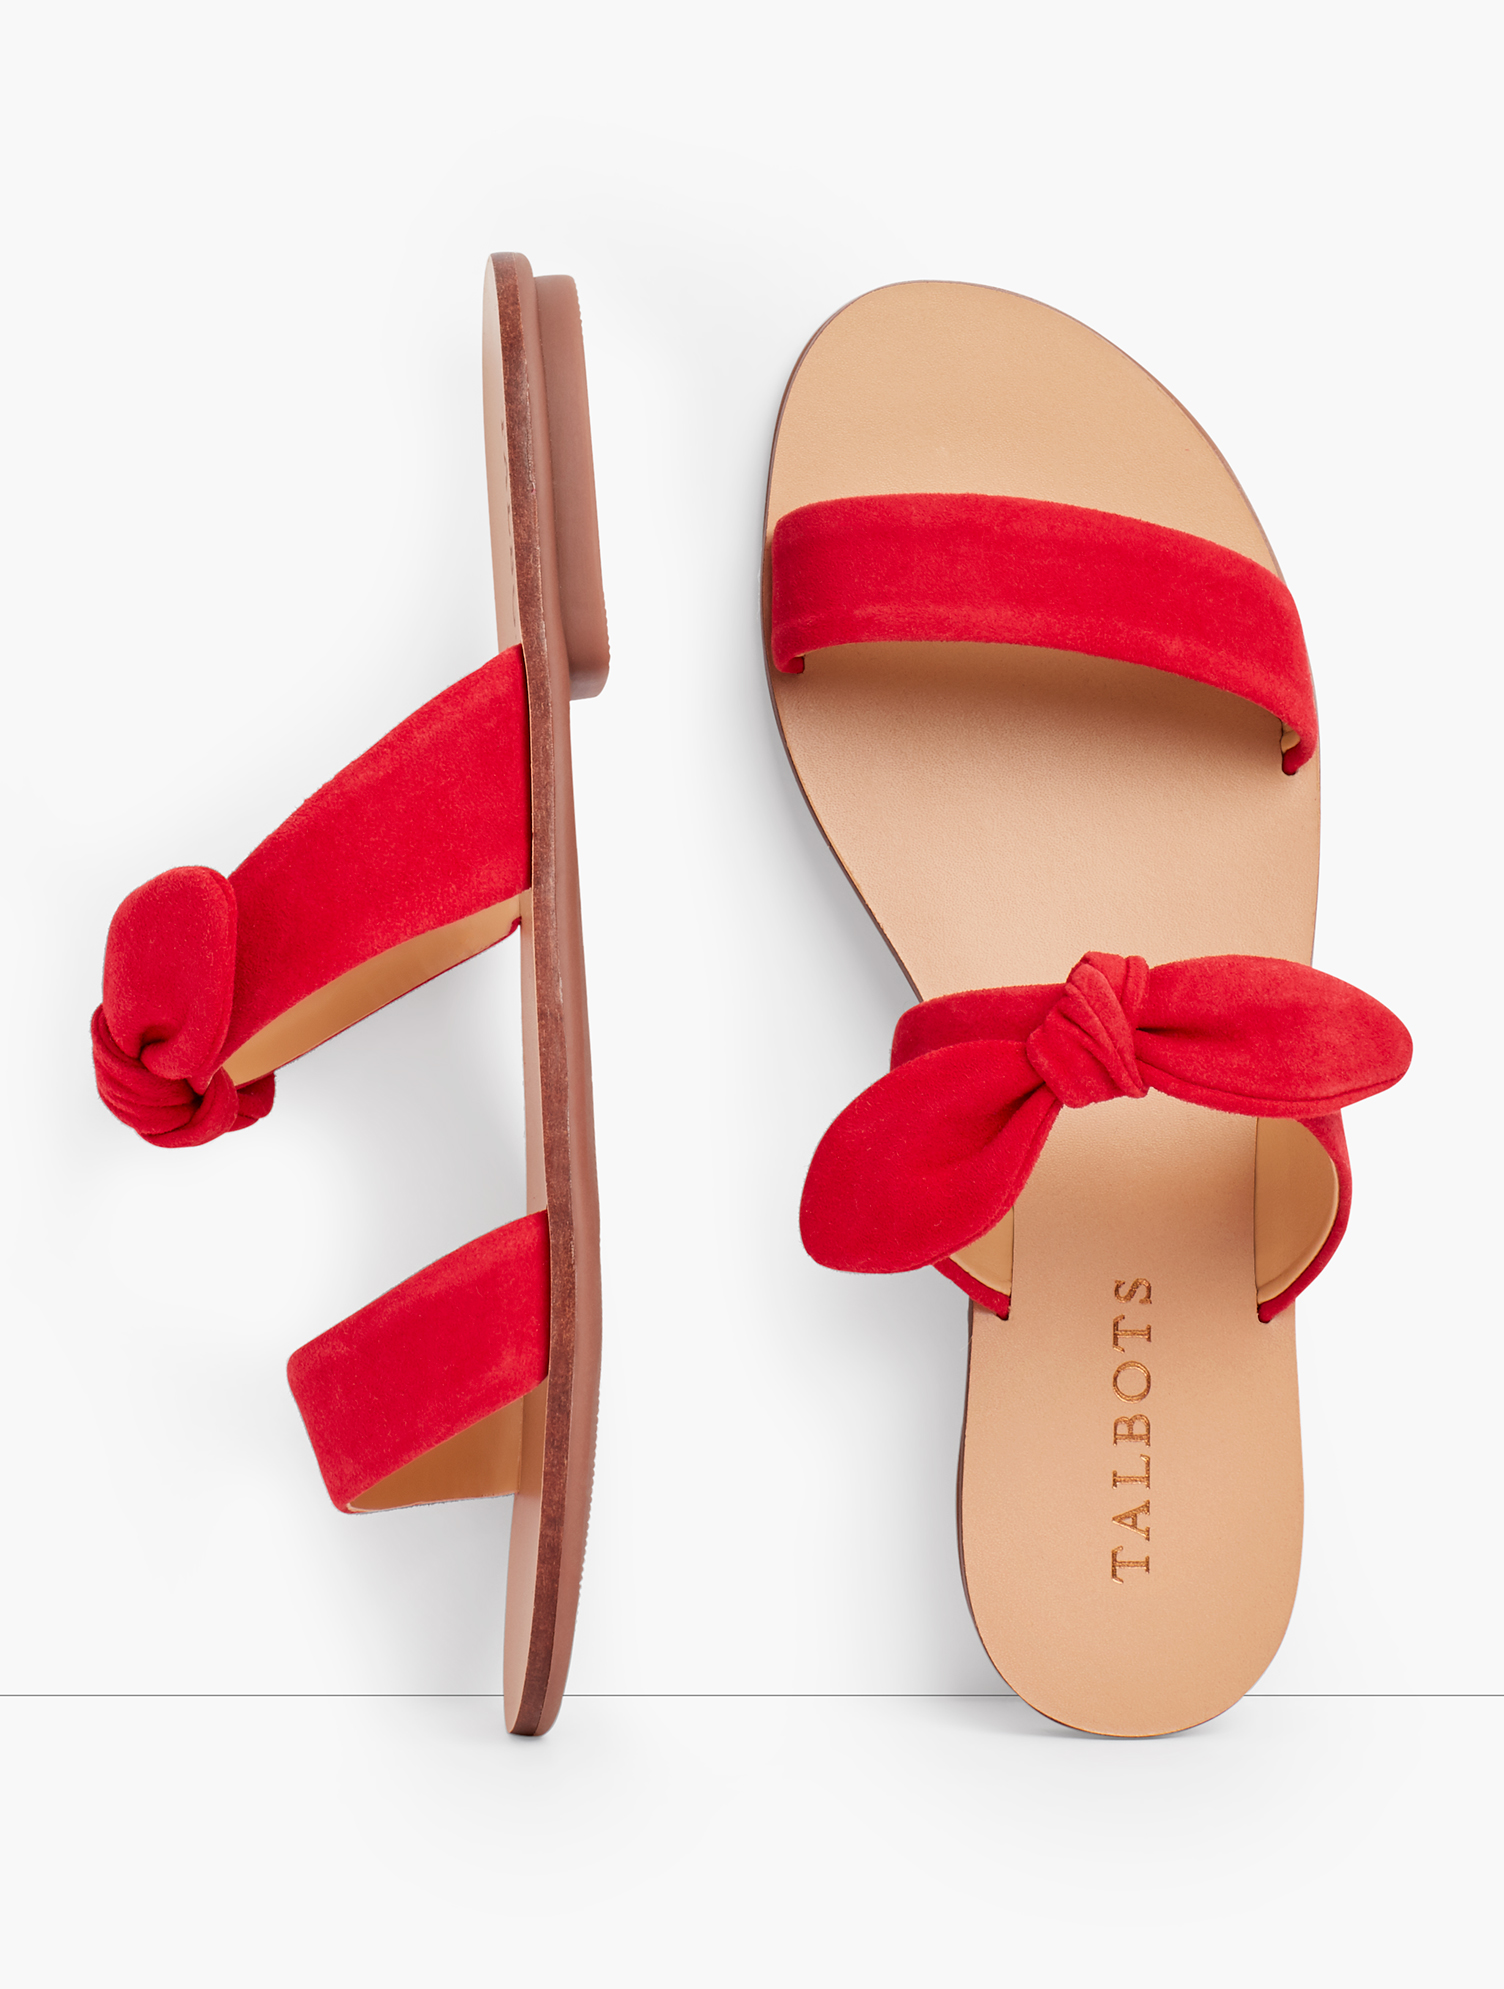 Hannah slides in soft suede. Fun knotted detail. Features Gift Box/Gift Wrap is not available for this item 1/3 inches heel Rubber Sole Imported Material: 100% Leather Hannah Knotted Slides - Suede - Red - 10M Talbots